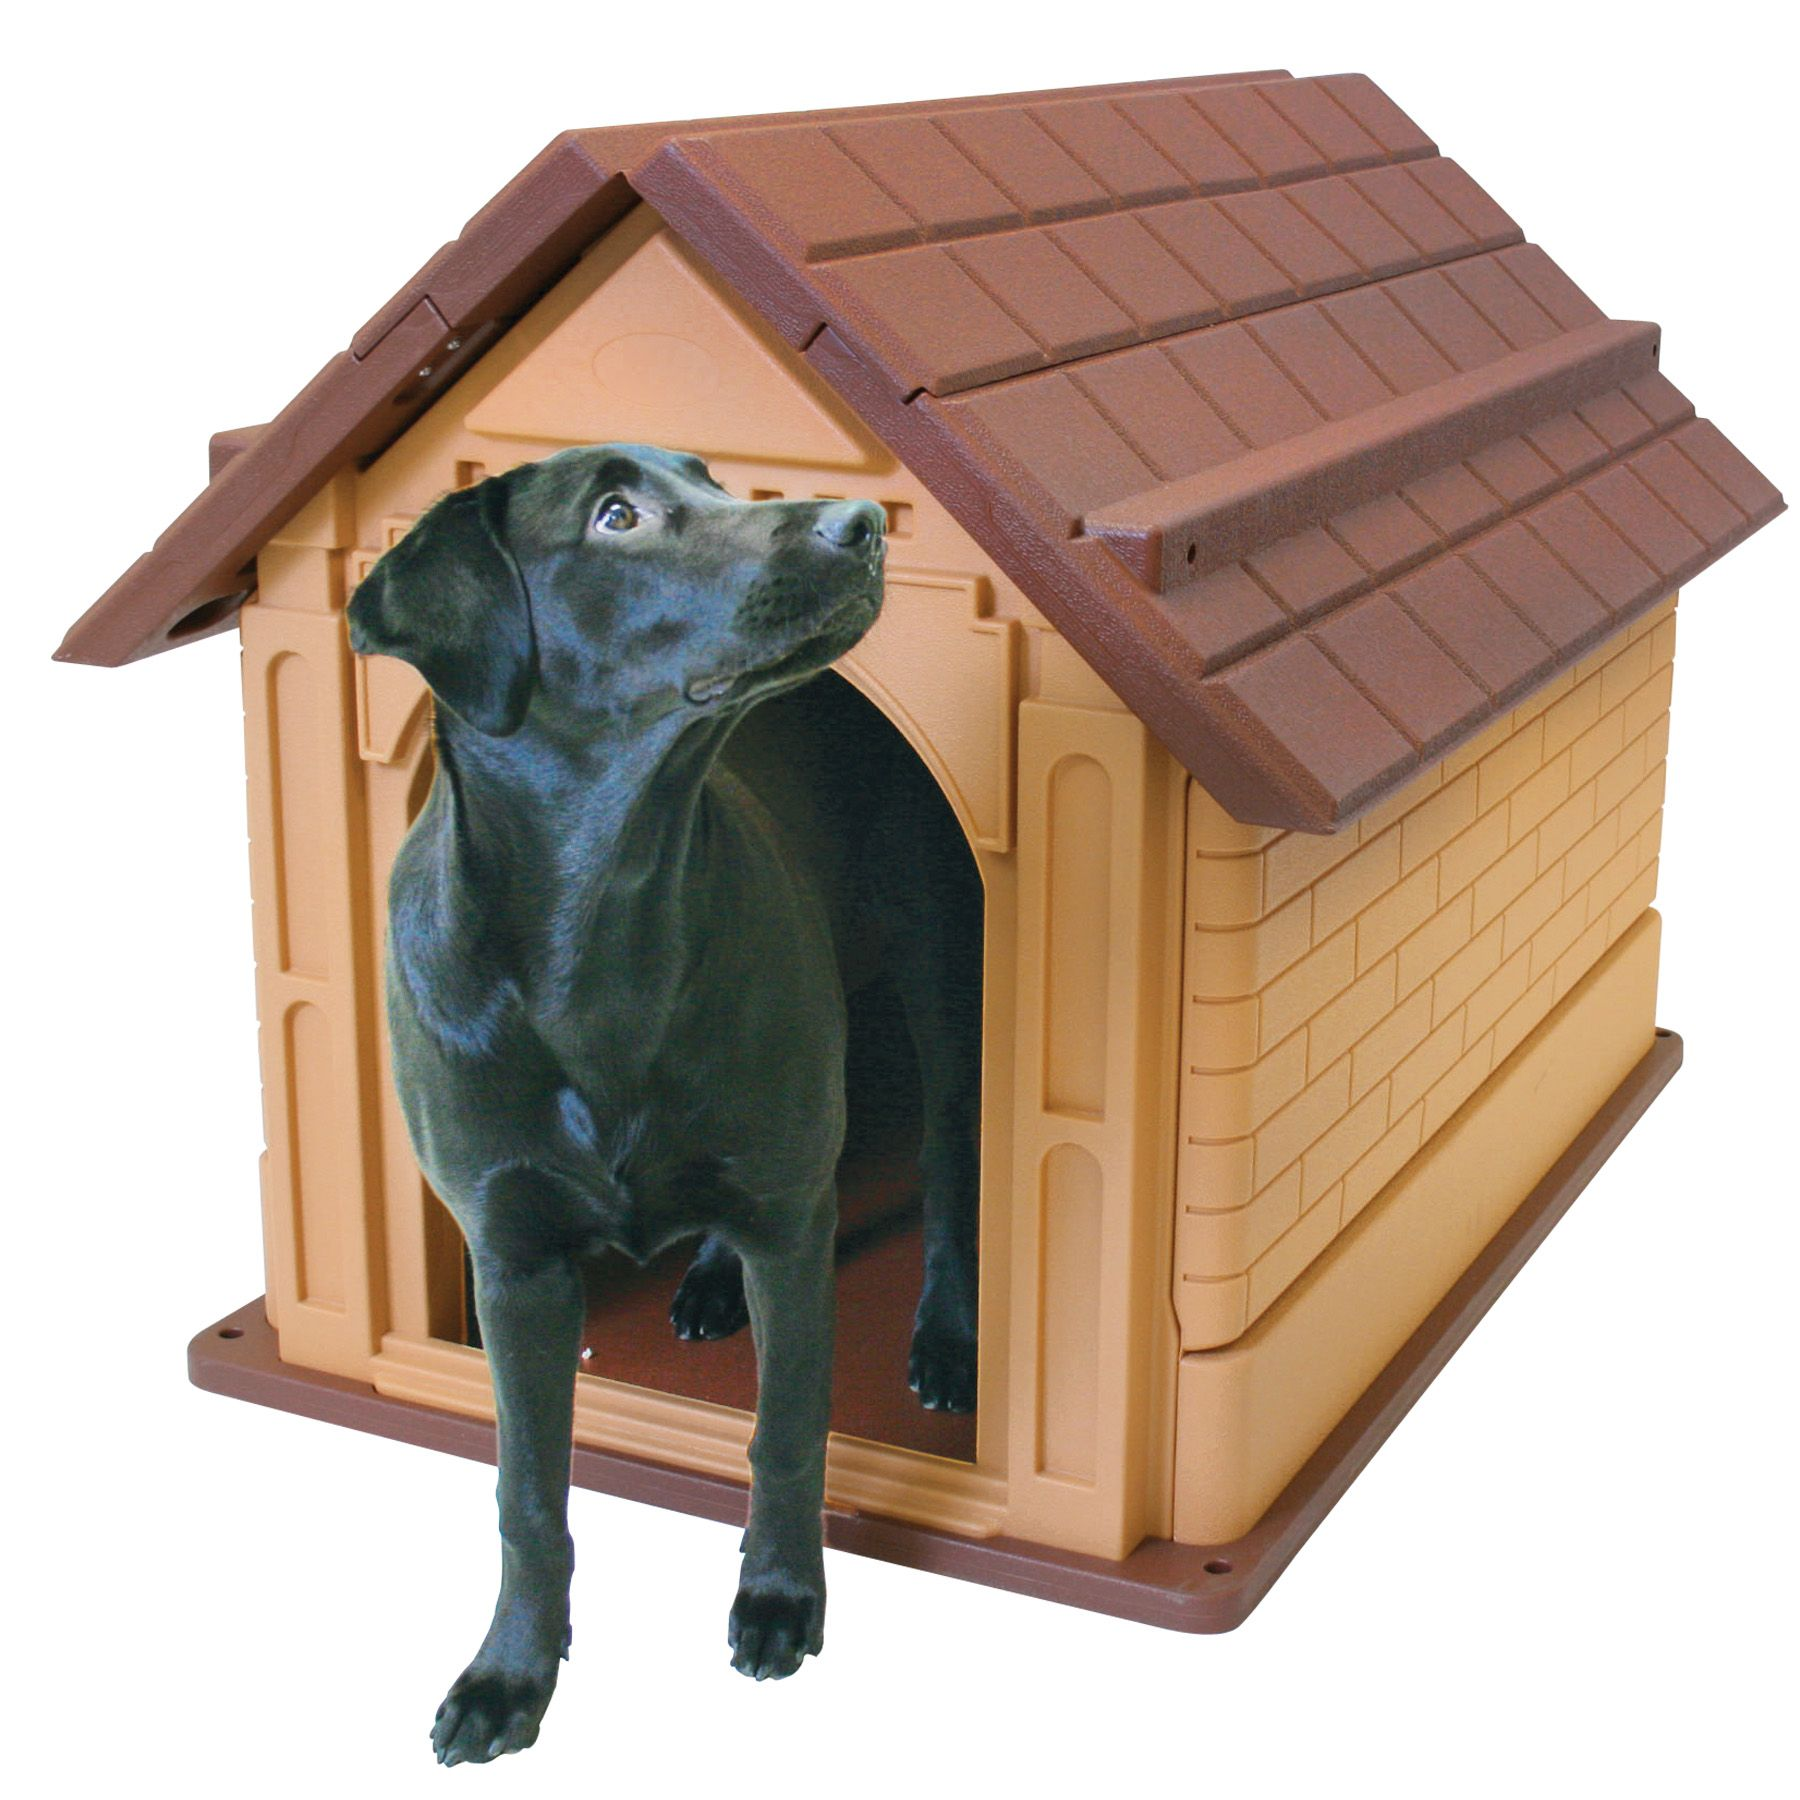 OurPet's Comfy Cabin Doug House Medium